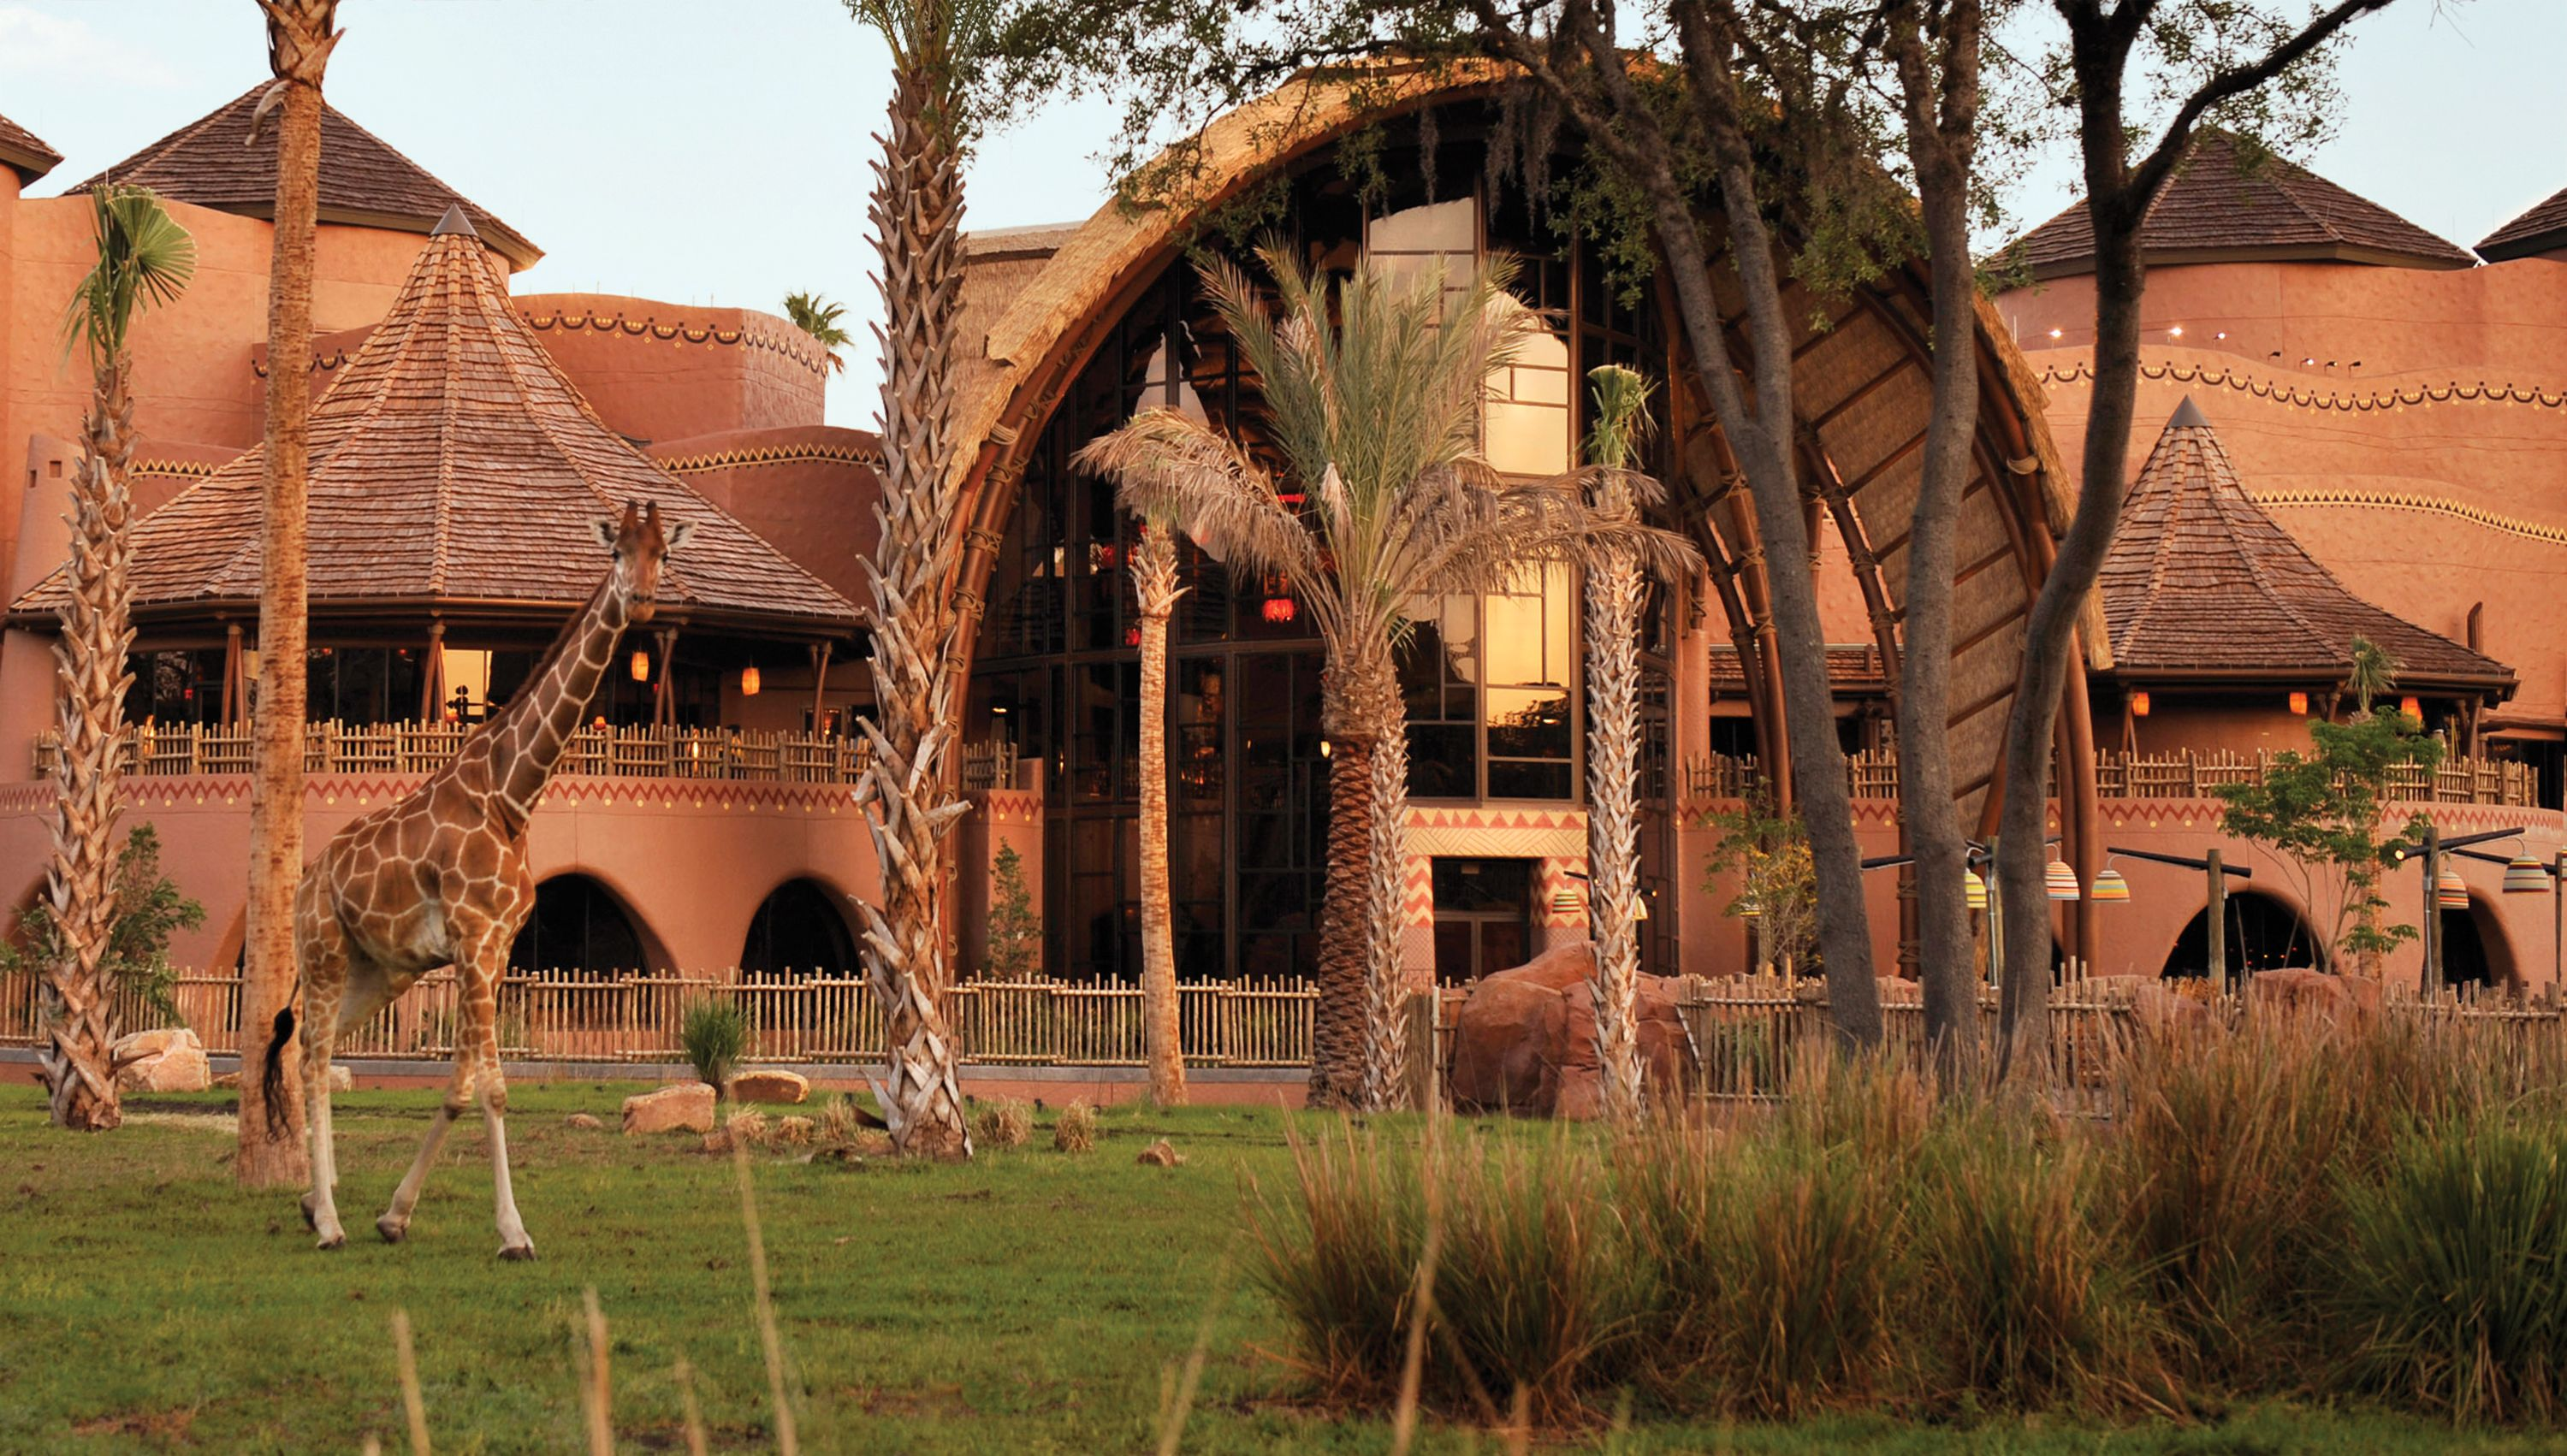 Disney Resort Hotels, Disney's Animal Kingdom Lodge